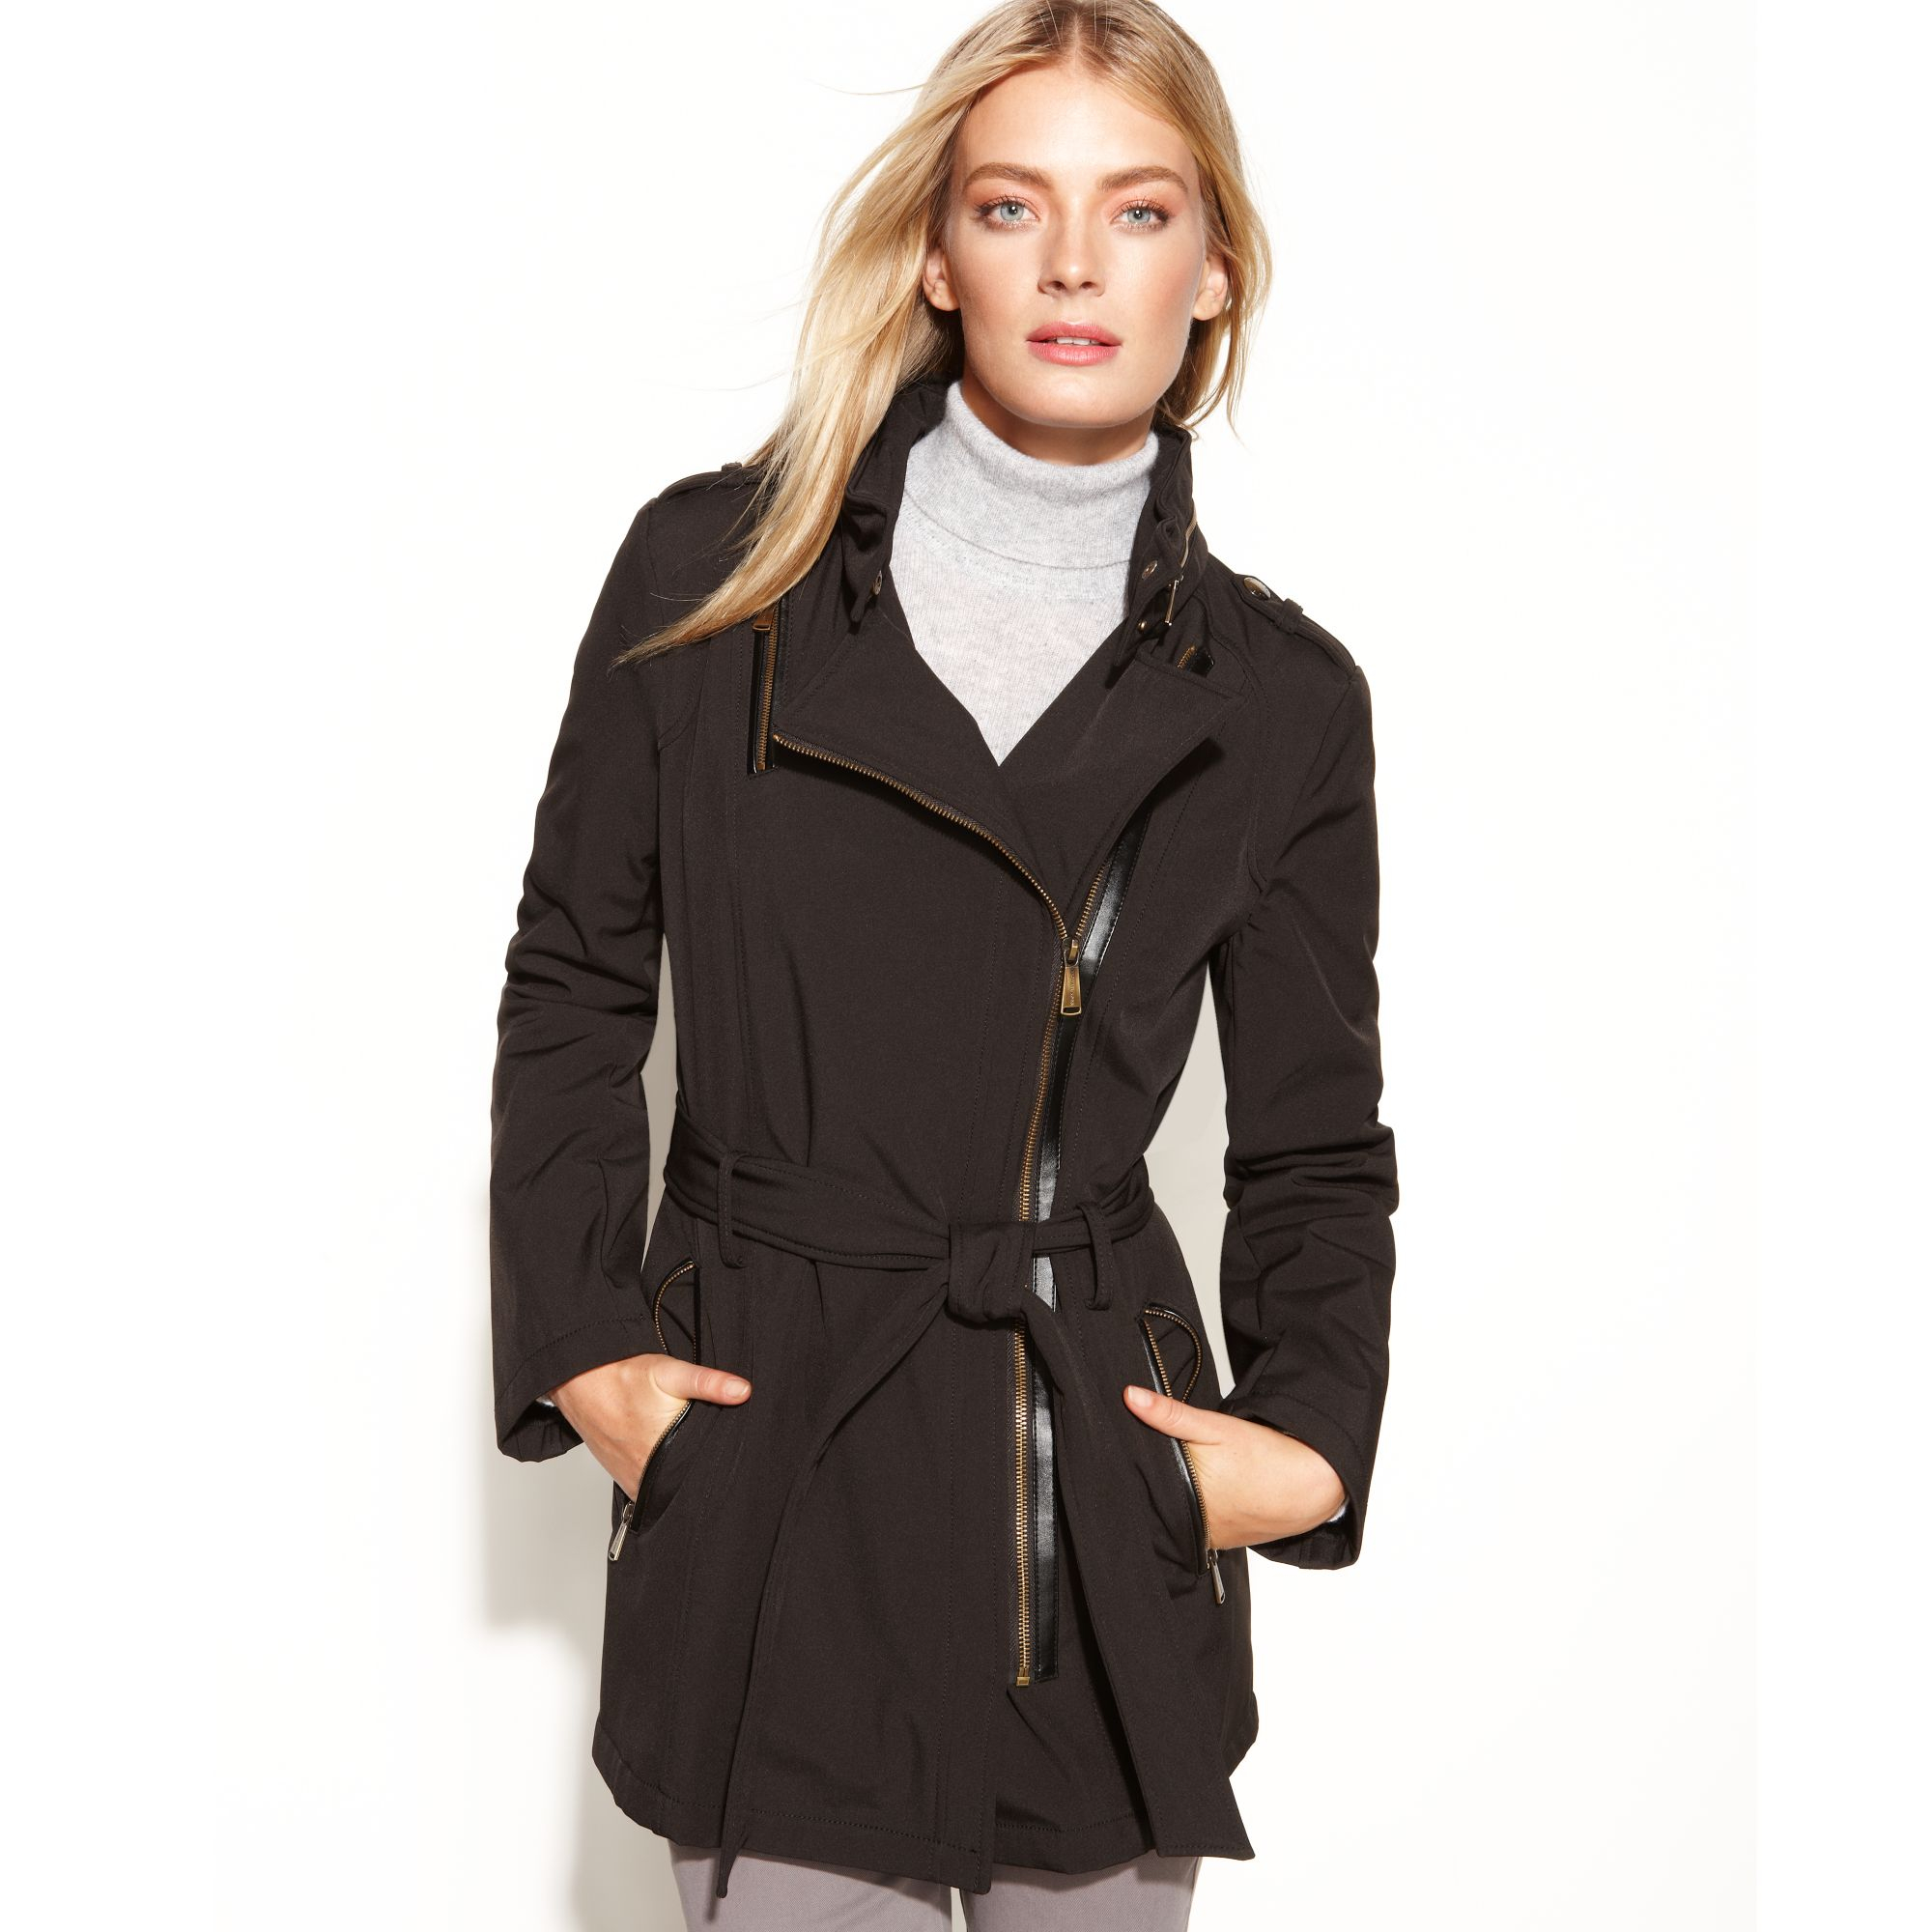 790b83353ccc Lyst - Michael Kors Hooded Asymmetrical Belted Softshell Coat in Black